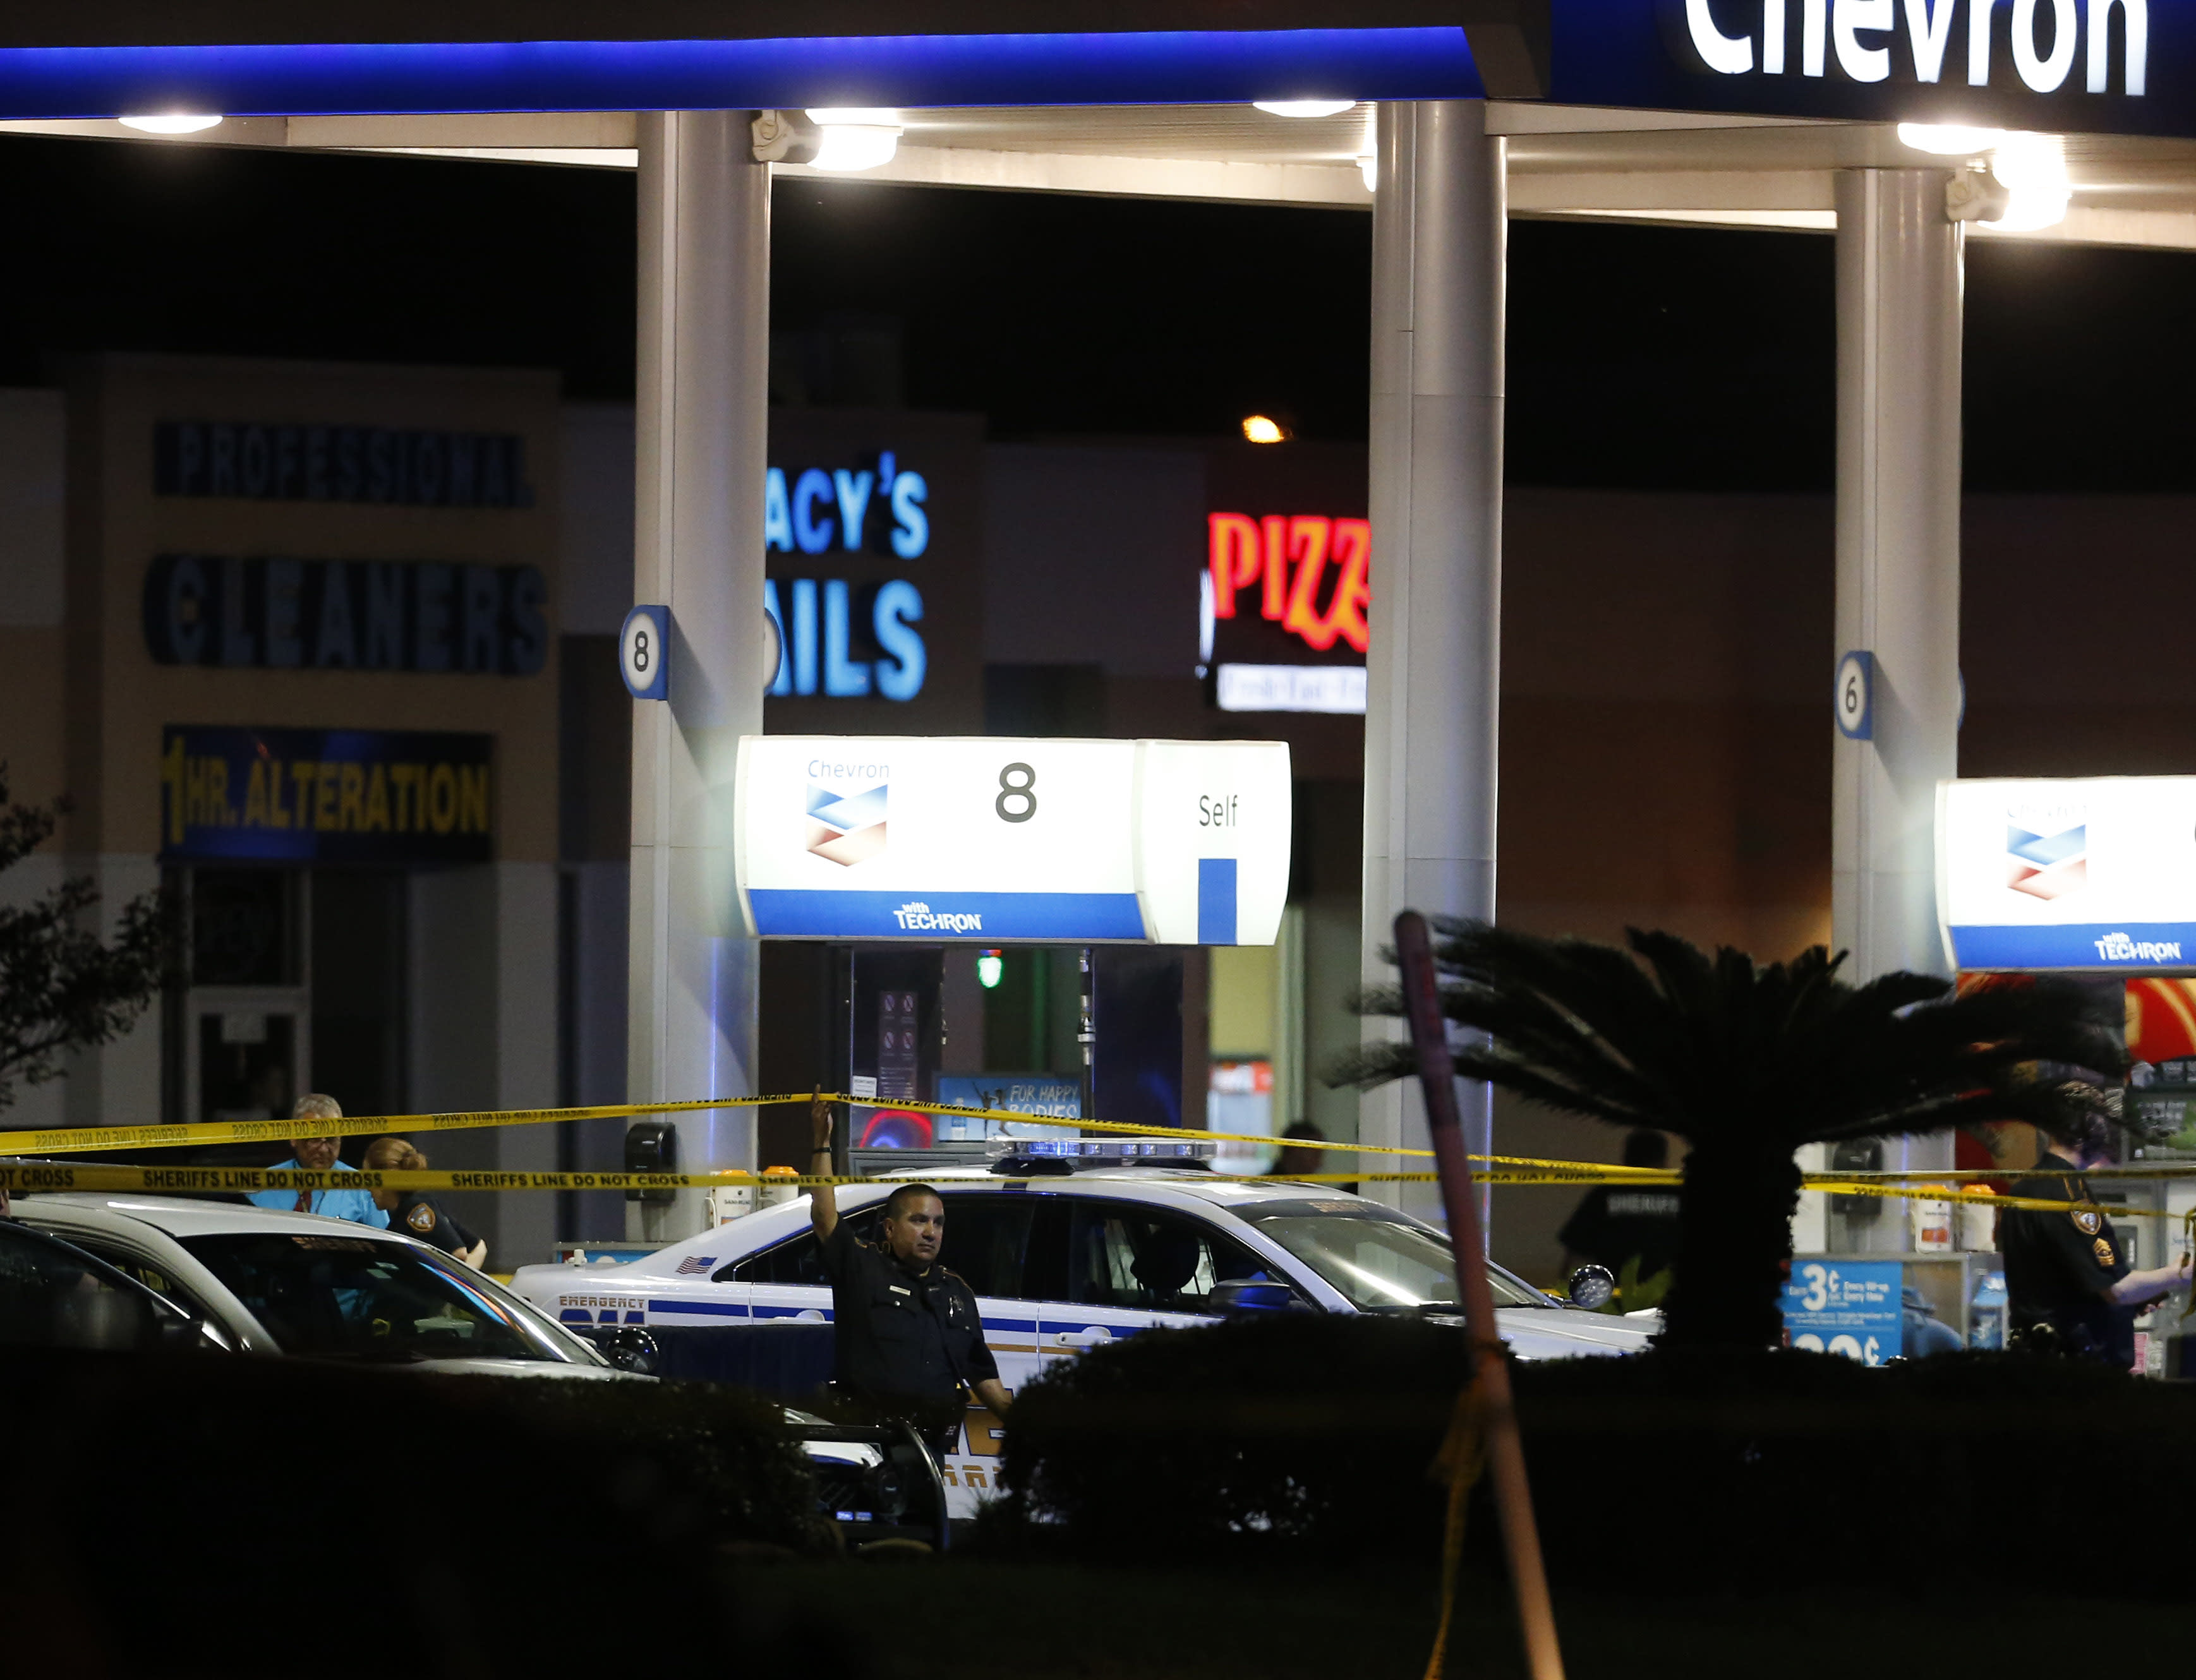 Sheriff's deputy fatally shot in Houston while pumping gas